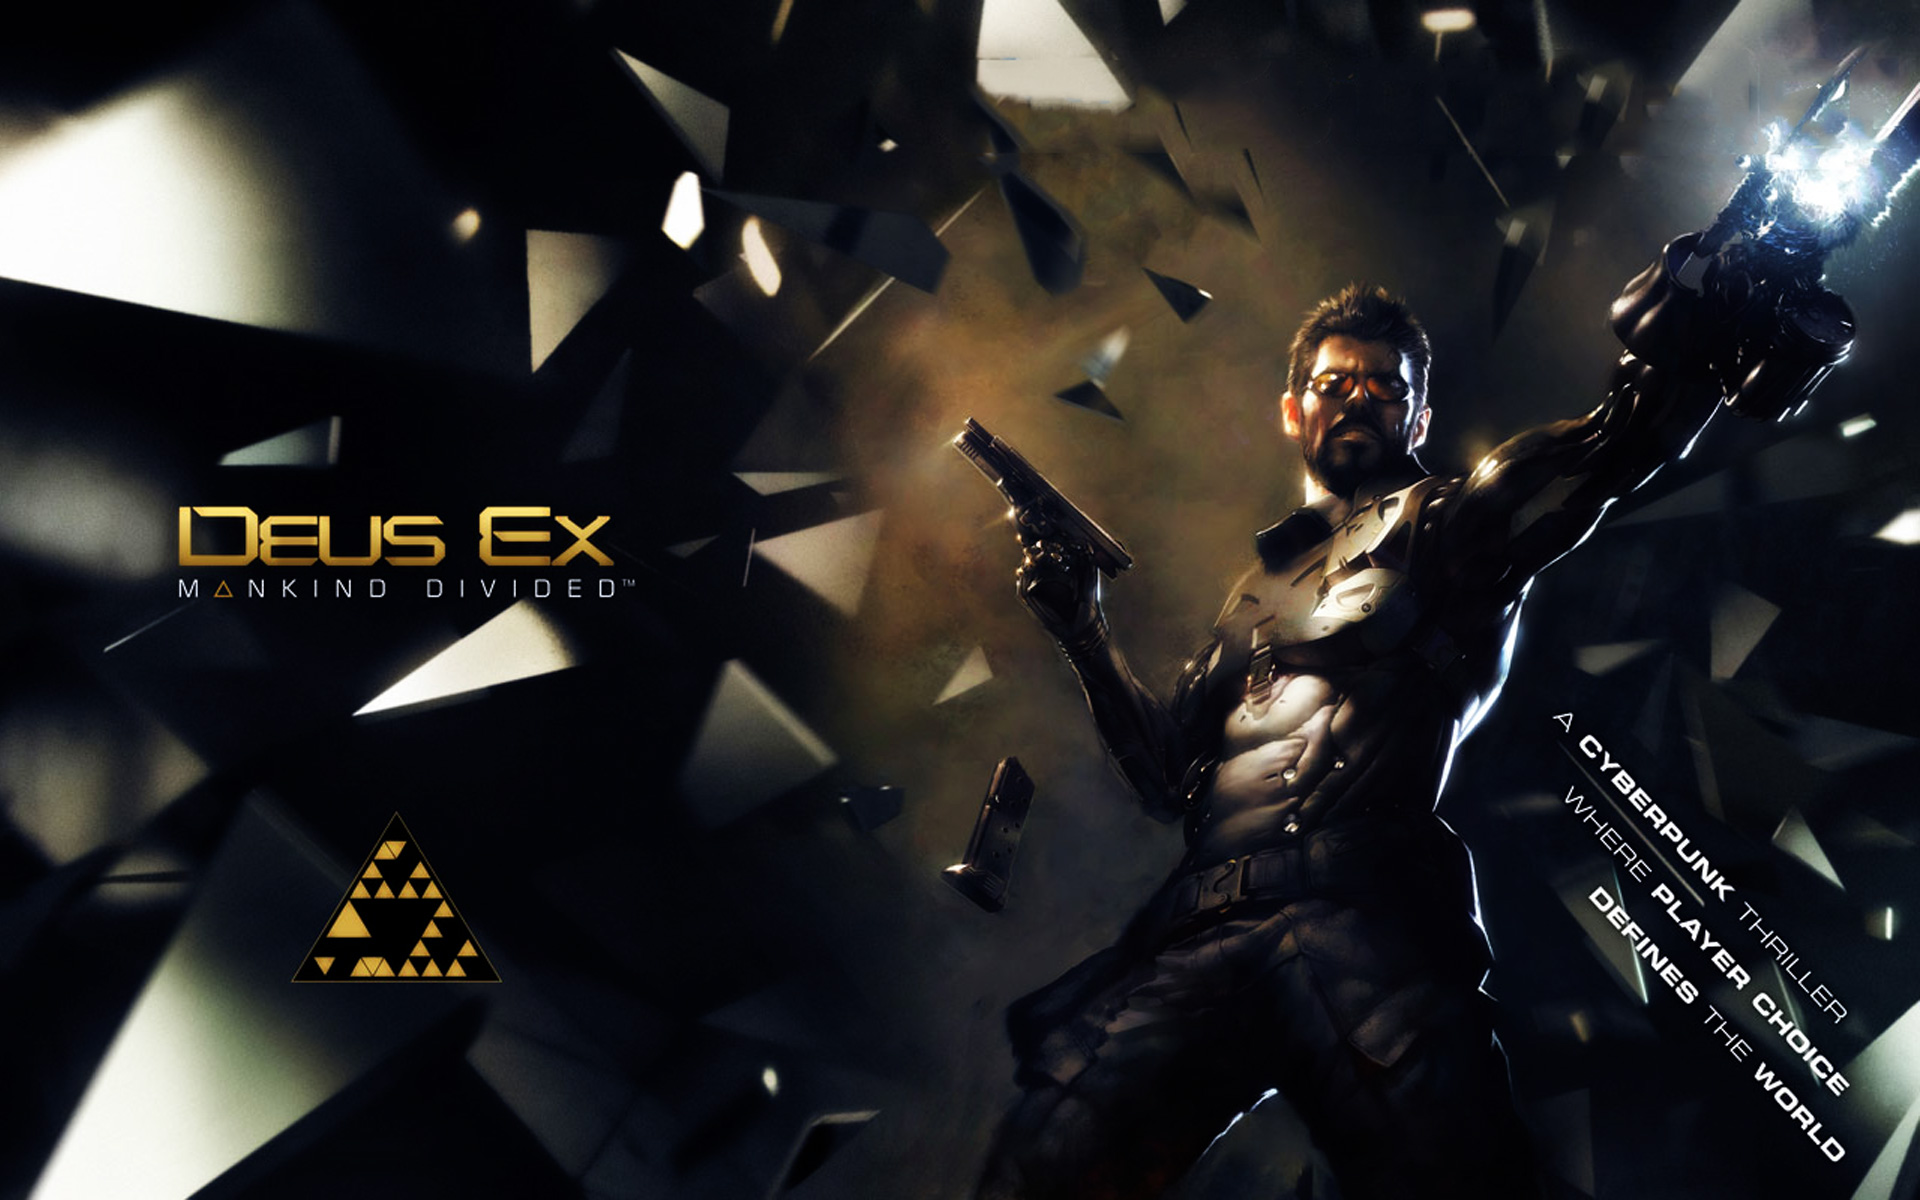 Deus Ex Mankind Divided - Express Elevator to Hell, Going Down ...